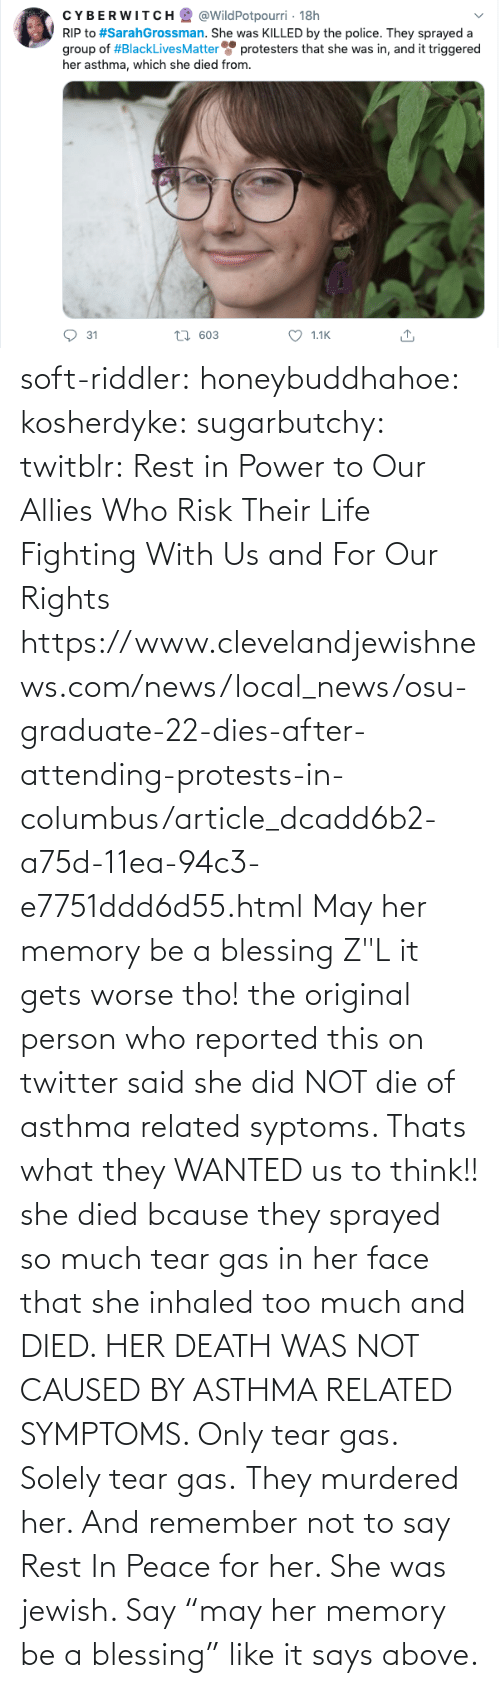 "News: soft-riddler:  honeybuddhahoe:  kosherdyke:  sugarbutchy:  twitblr: Rest in Power to Our Allies Who Risk Their Life Fighting With Us and For Our Rights https://www.clevelandjewishnews.com/news/local_news/osu-graduate-22-dies-after-attending-protests-in-columbus/article_dcadd6b2-a75d-11ea-94c3-e7751ddd6d55.html    May her memory be a blessing Z""L  it gets worse tho! the original person who reported this on twitter said she did NOT die of asthma related syptoms. Thats what they WANTED us to think!! she died bcause they sprayed so much tear gas in her face that she inhaled too much and DIED. HER DEATH WAS NOT CAUSED BY ASTHMA RELATED SYMPTOMS. Only tear gas. Solely tear gas. They murdered her.     And remember not to say Rest In Peace for her. She was jewish. Say ""may her memory be a blessing"" like it says above."